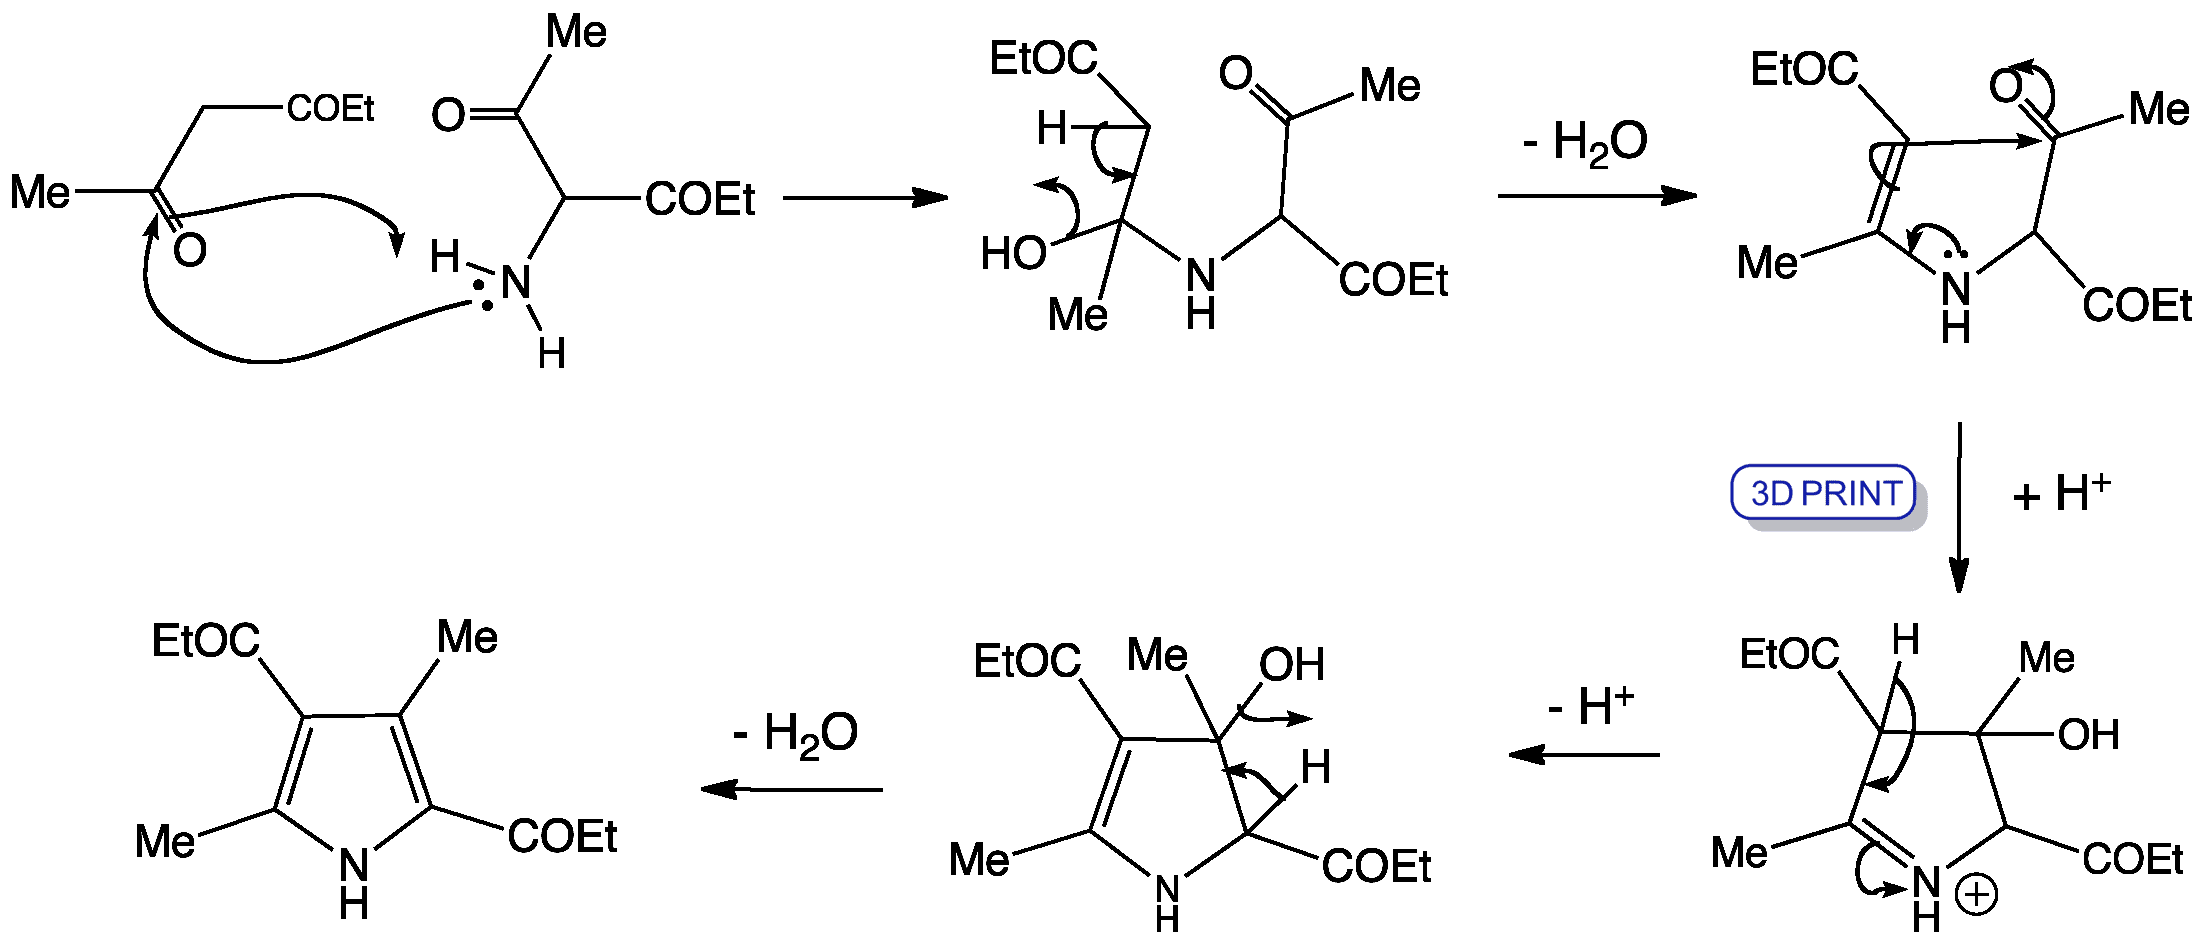 Knorr Pyrrole Synthesis